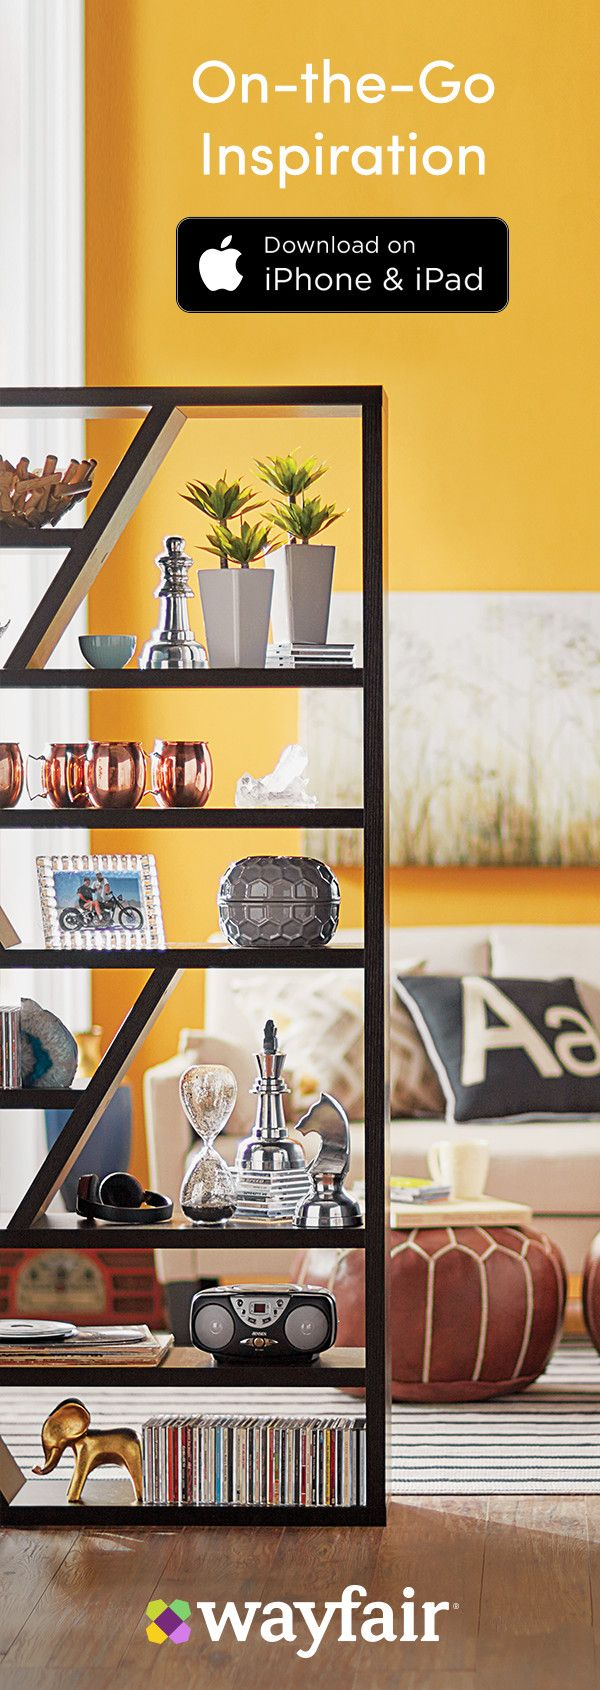 Download the Wayfair App to Access Exclusive Deals Daily